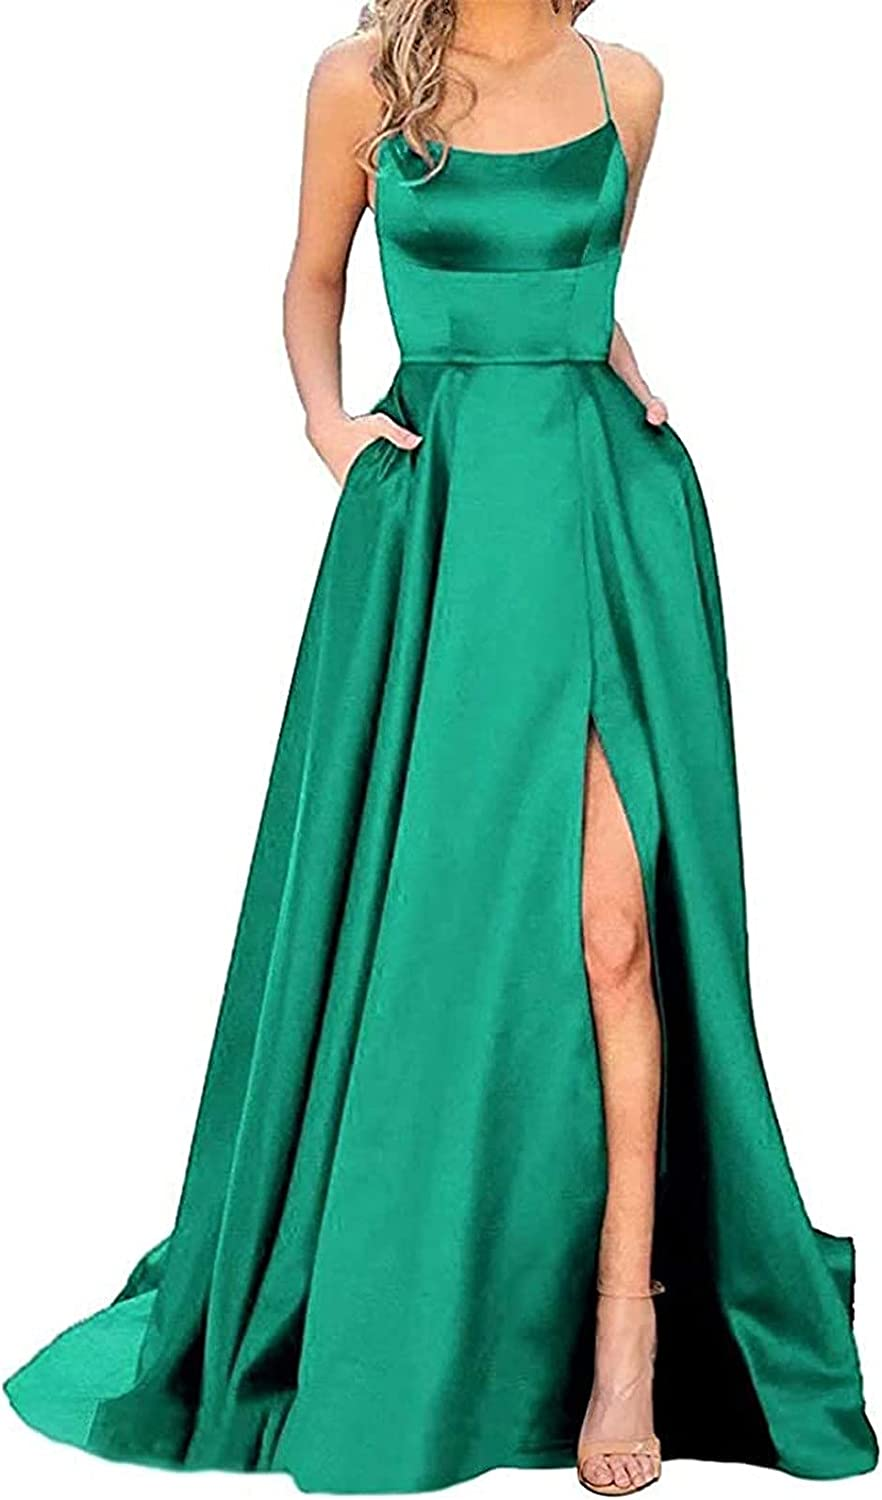 Women's Sexy Halter Evening Dress Fashion Ladies Backless Dresses Comfy Casual Skirt